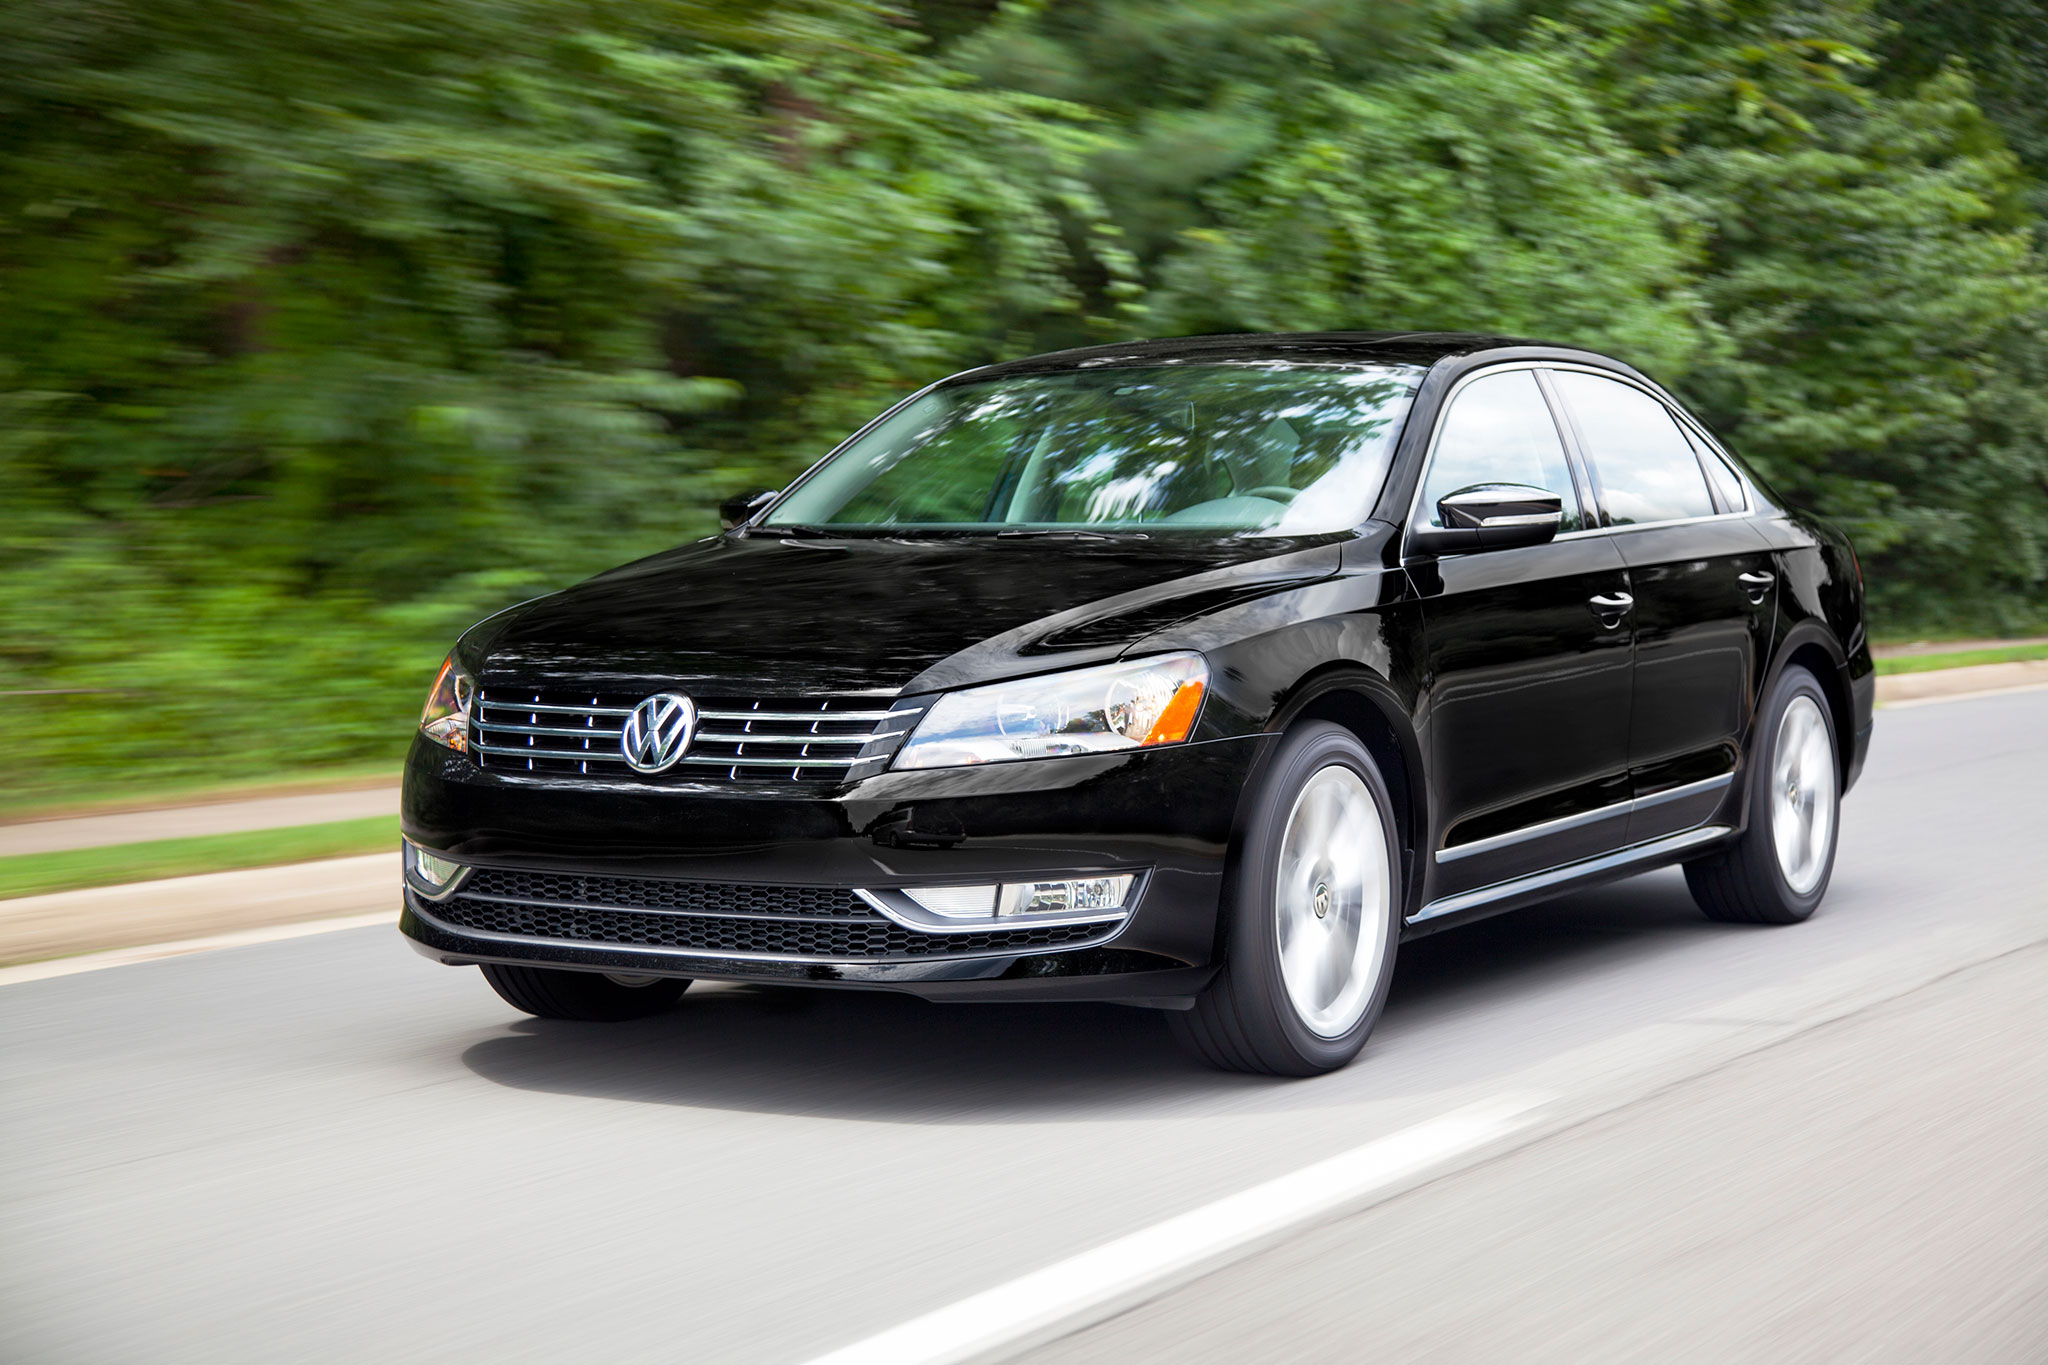 2014 Vw Passat Boasts Variety Of Engines And Trim Levels